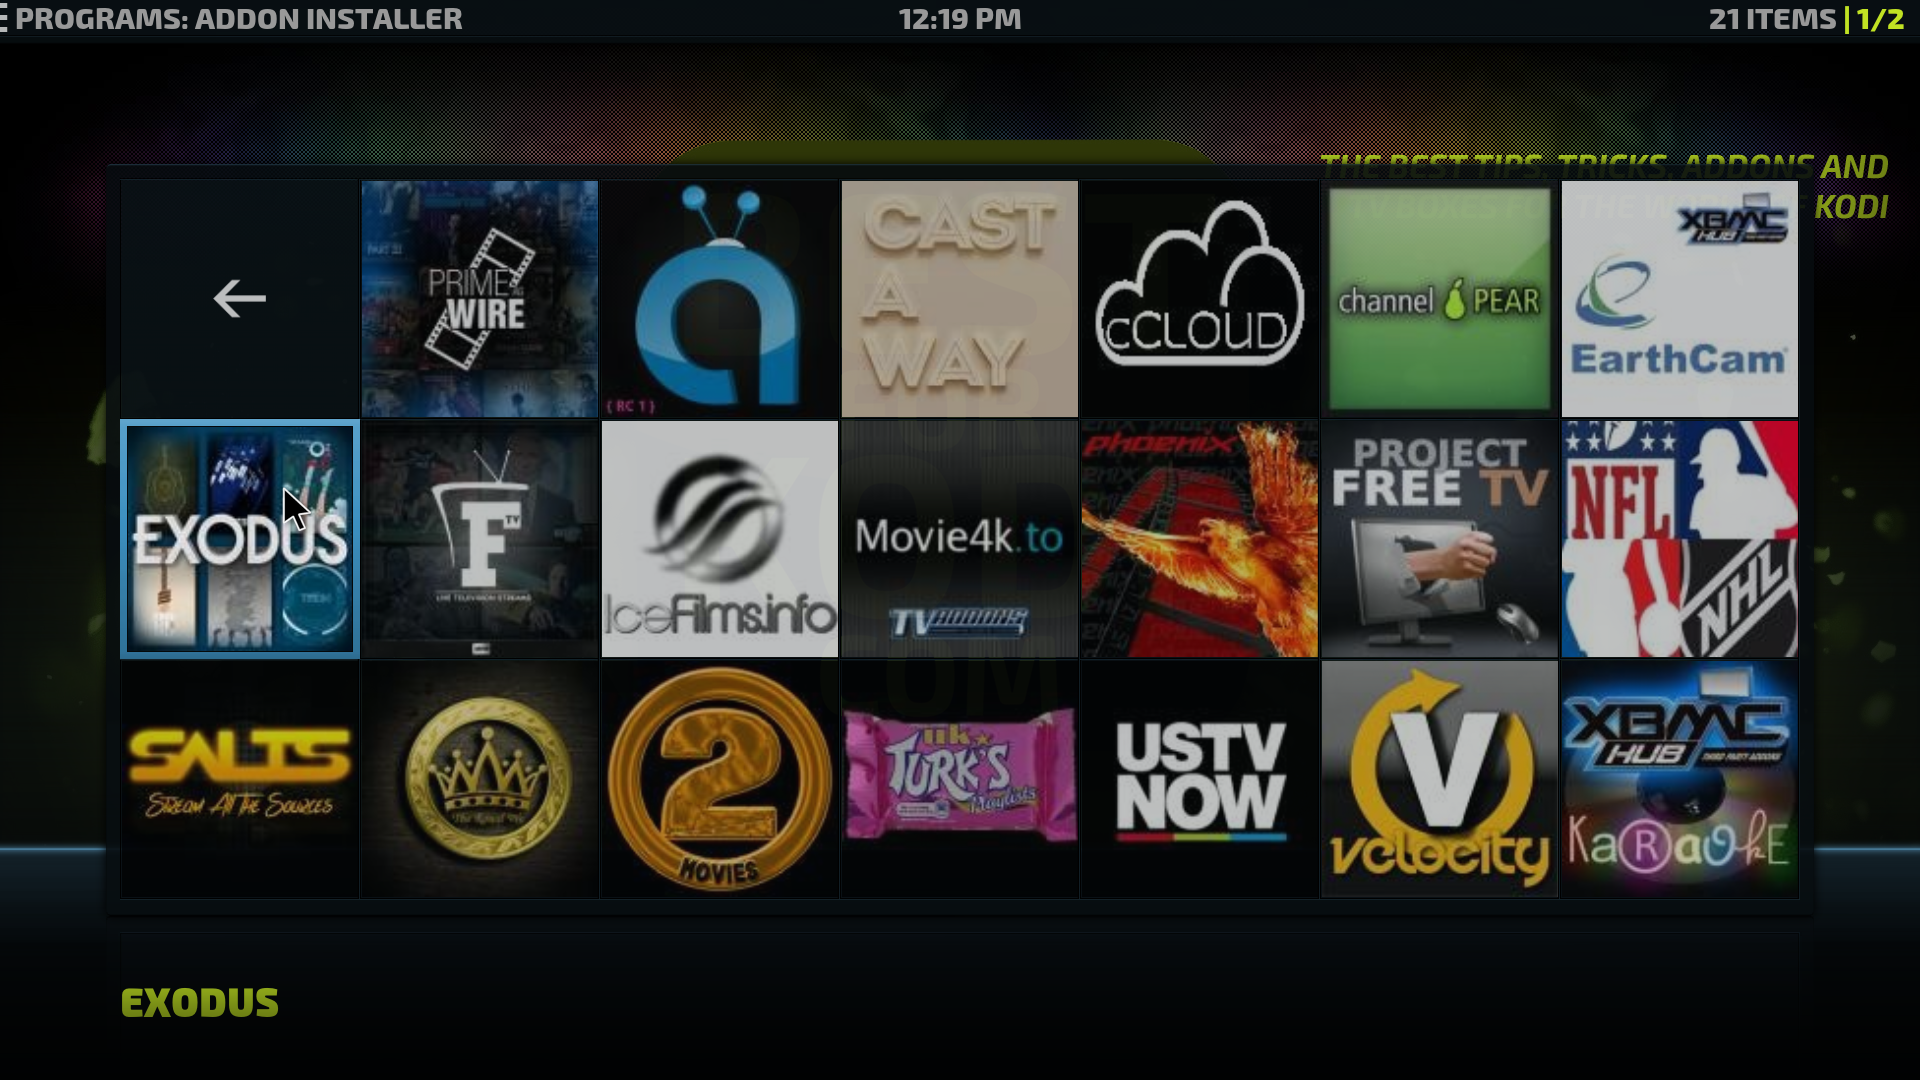 Install Exodus Addon Kodi - Movies and TV Genesis replacement